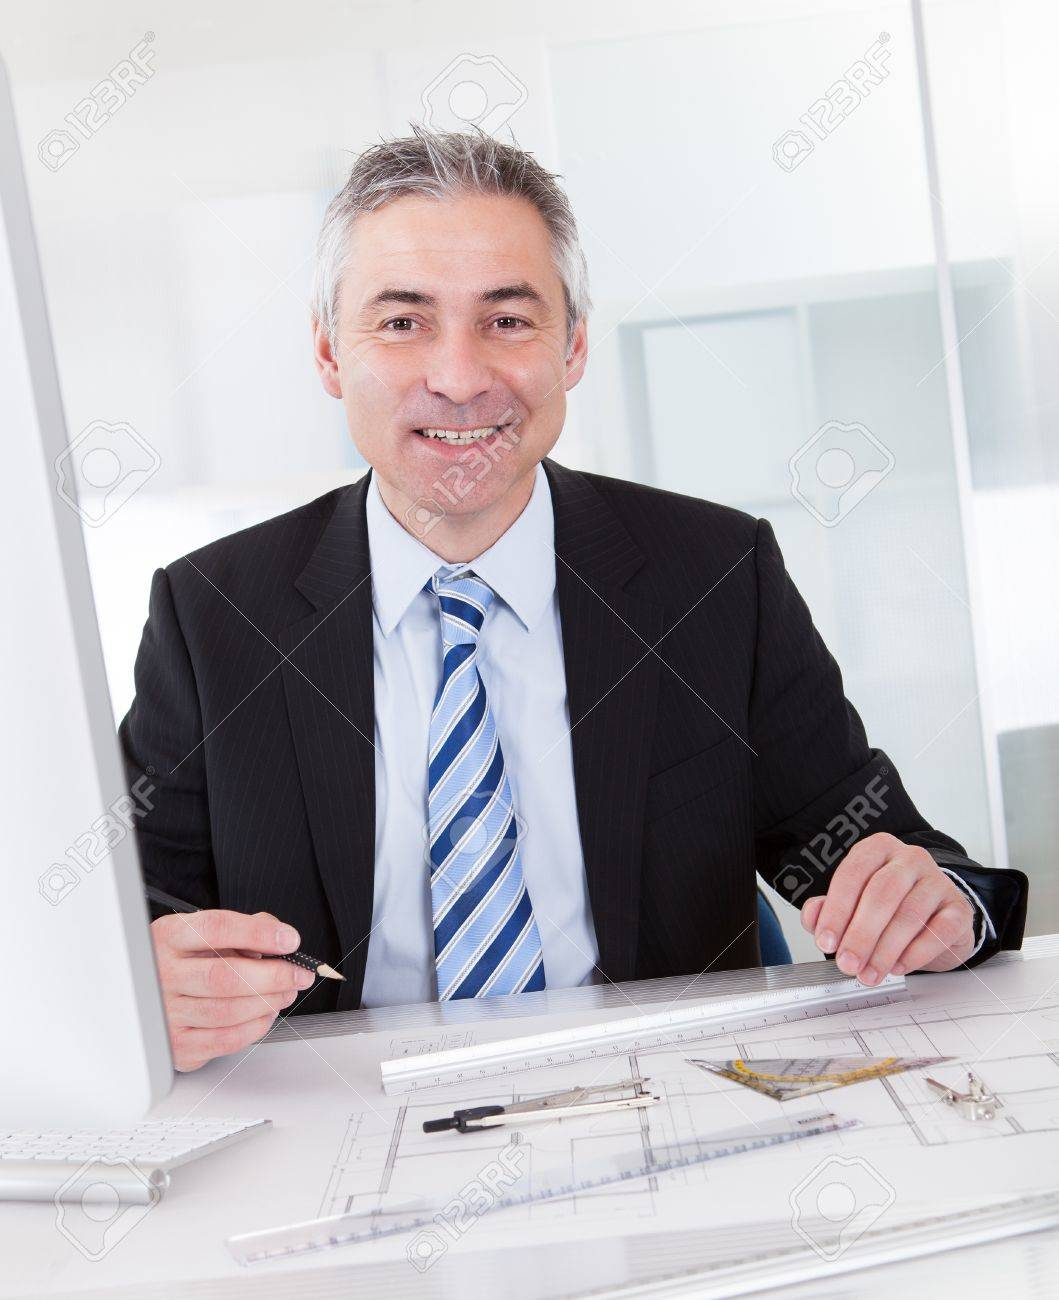 Portrait Of Mature Architect Male With Blueprint In The Office Stock Photo - 20535362